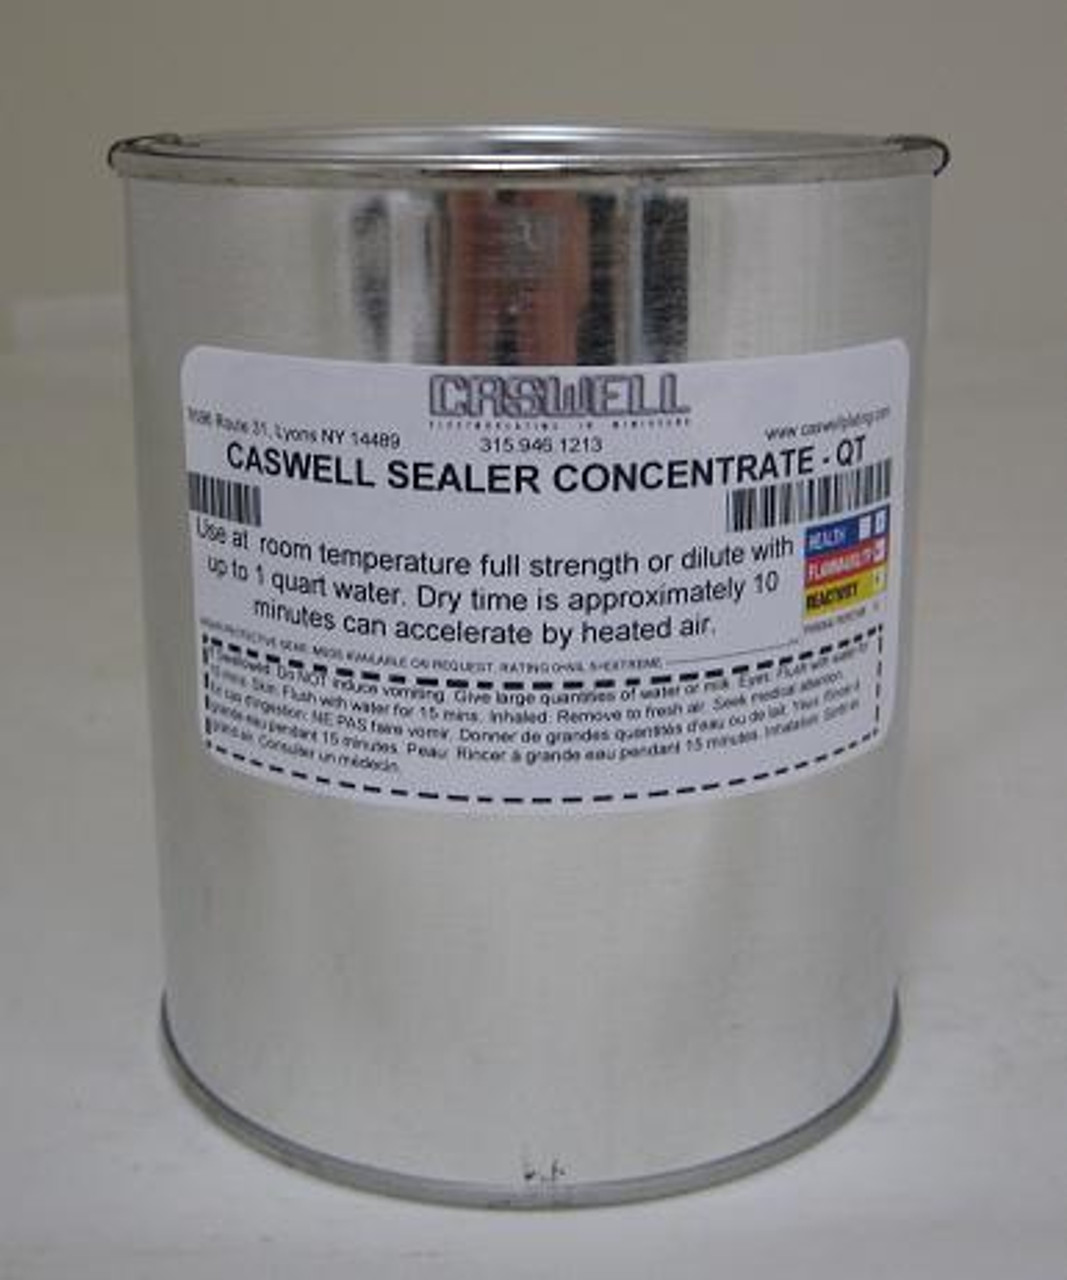 CASWELL SEALER CONCENTRATE - 1 GALLON